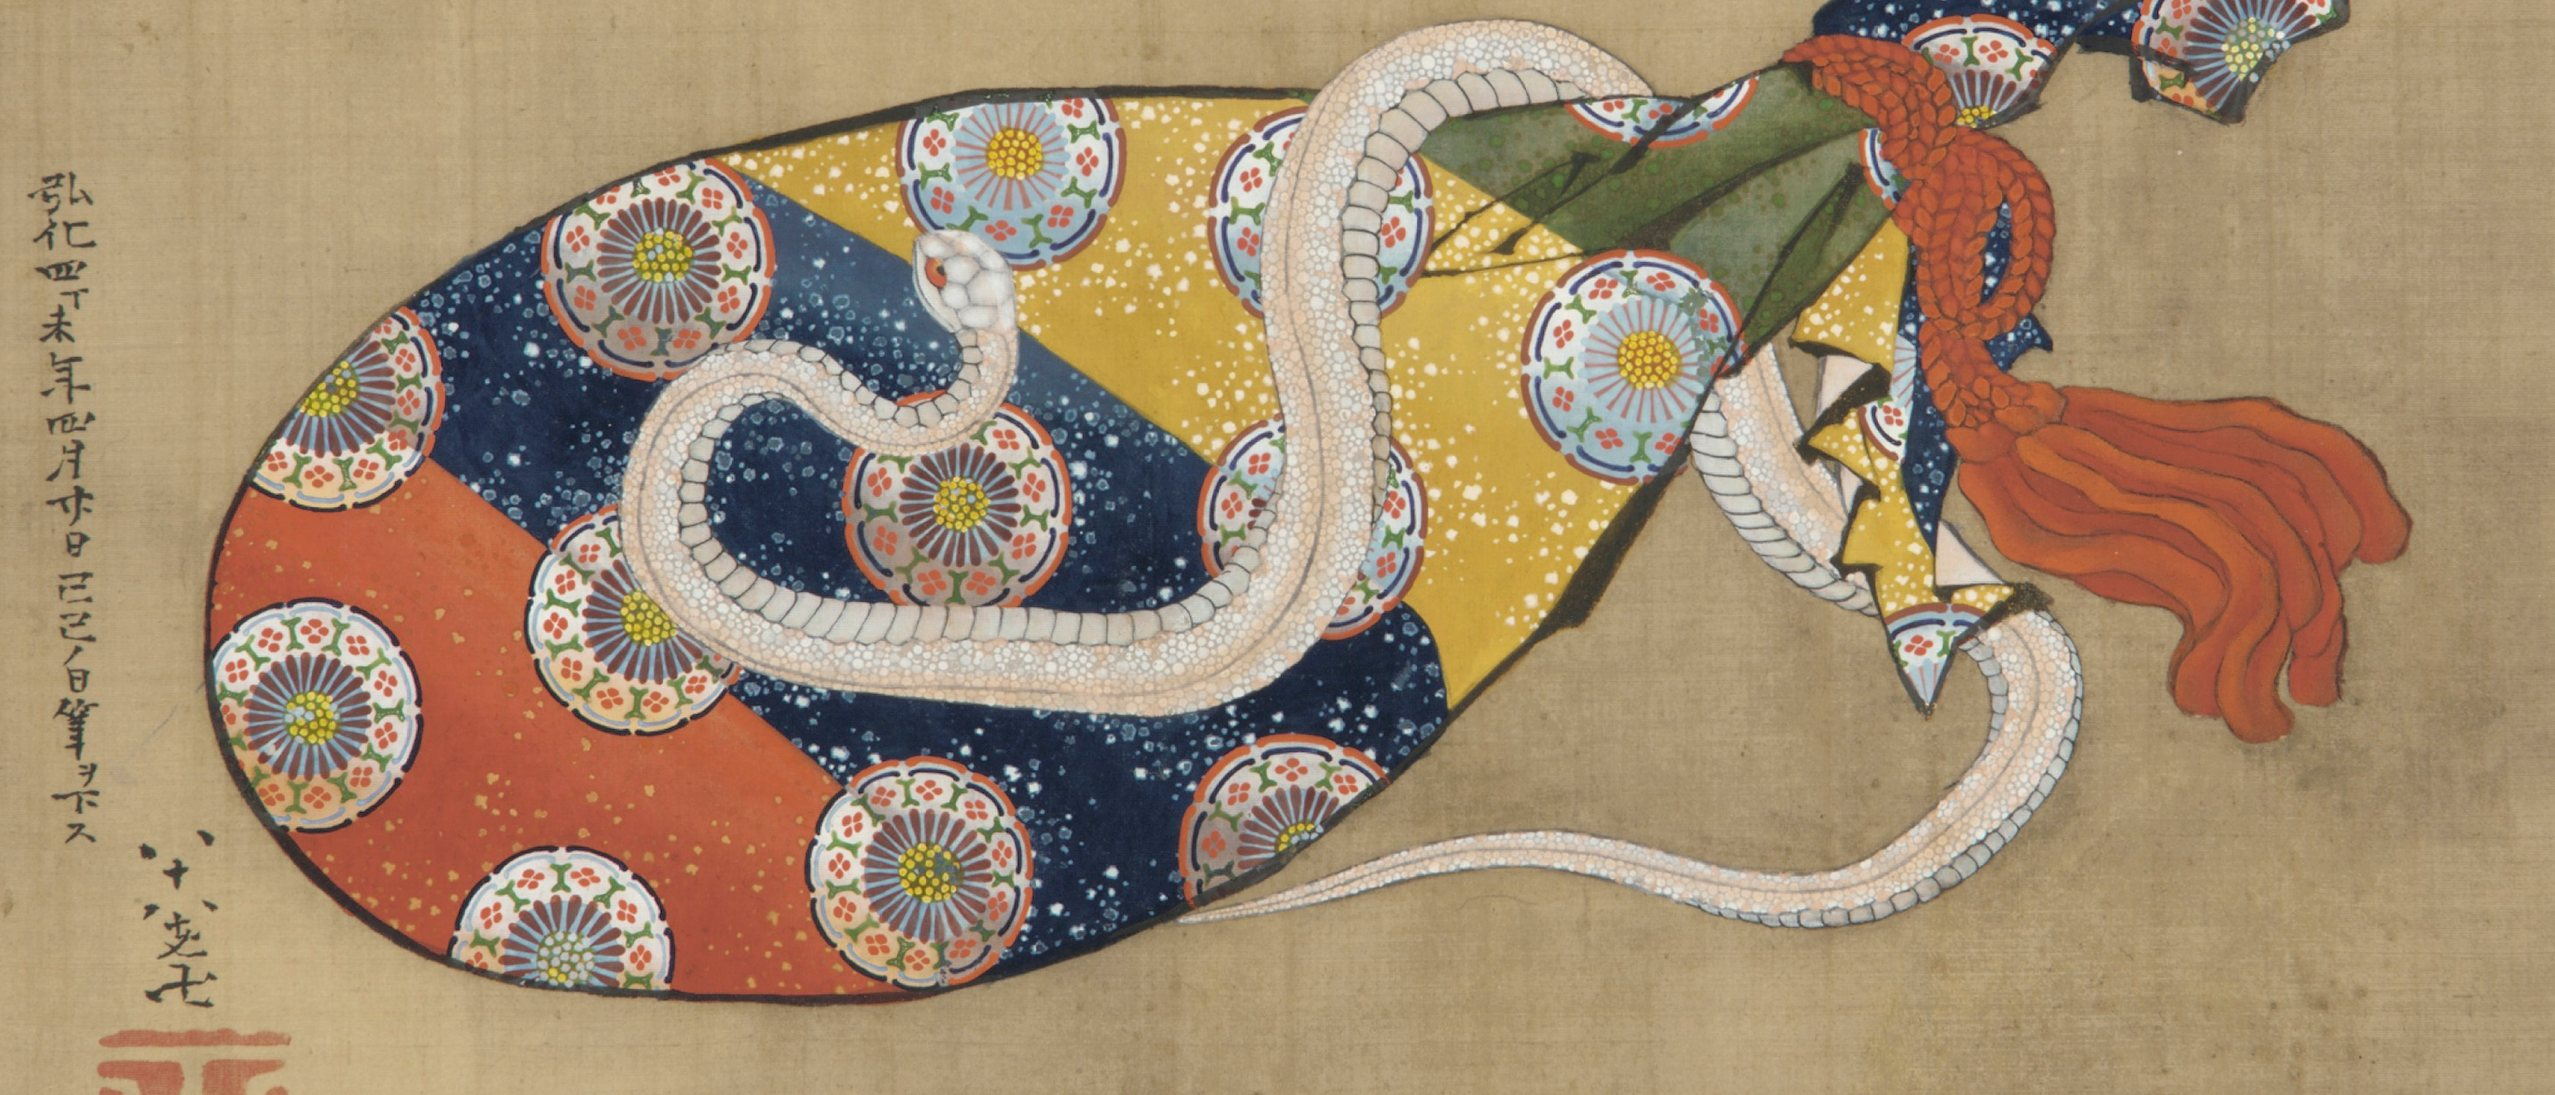 The Lute and White Snake of Benten (Sarasvati)